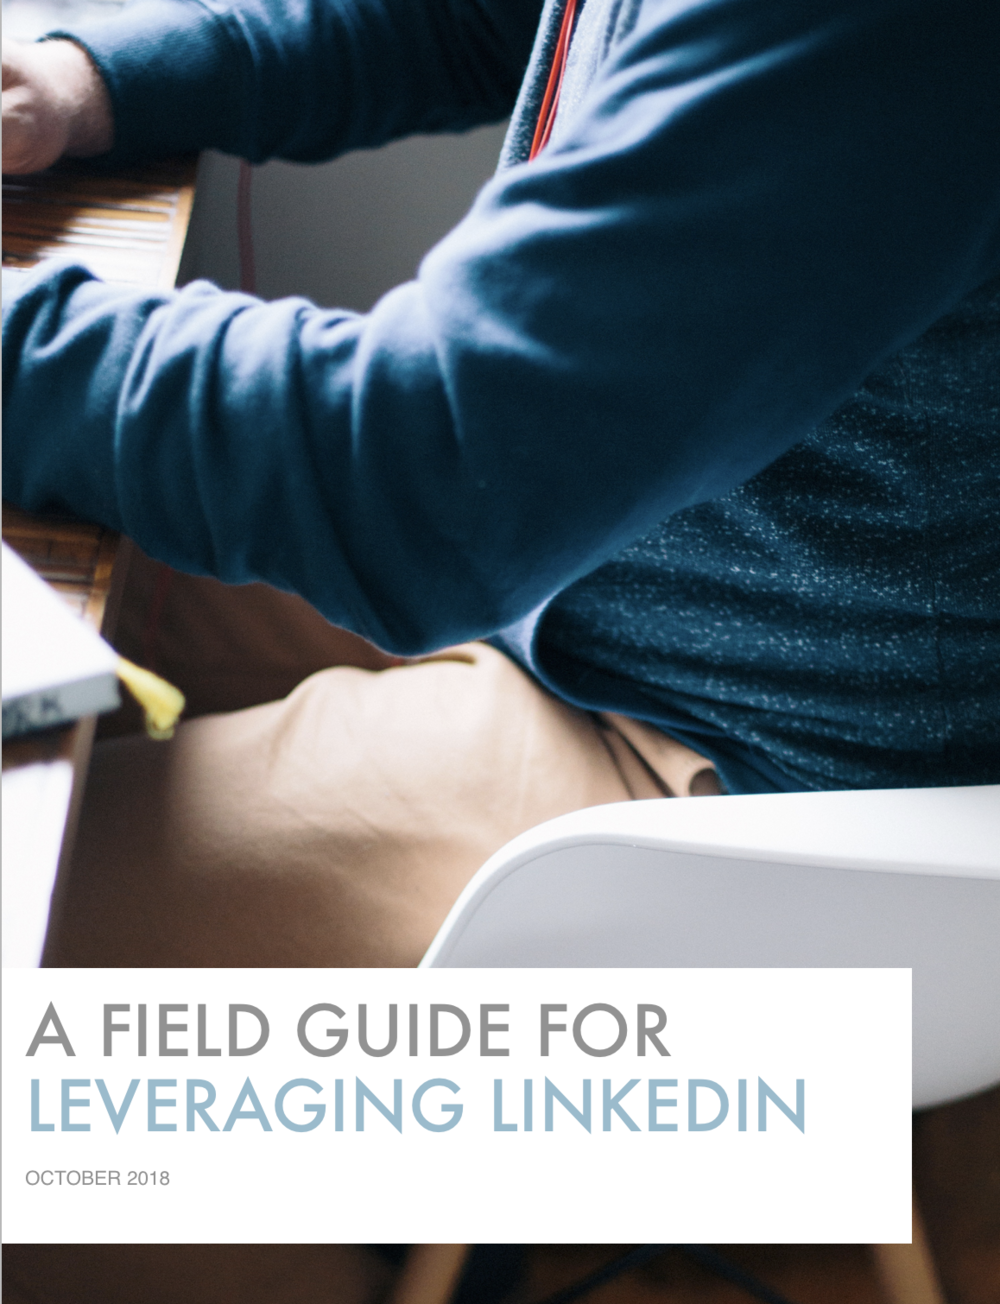 Field Guide for Leveraging LinkedIn